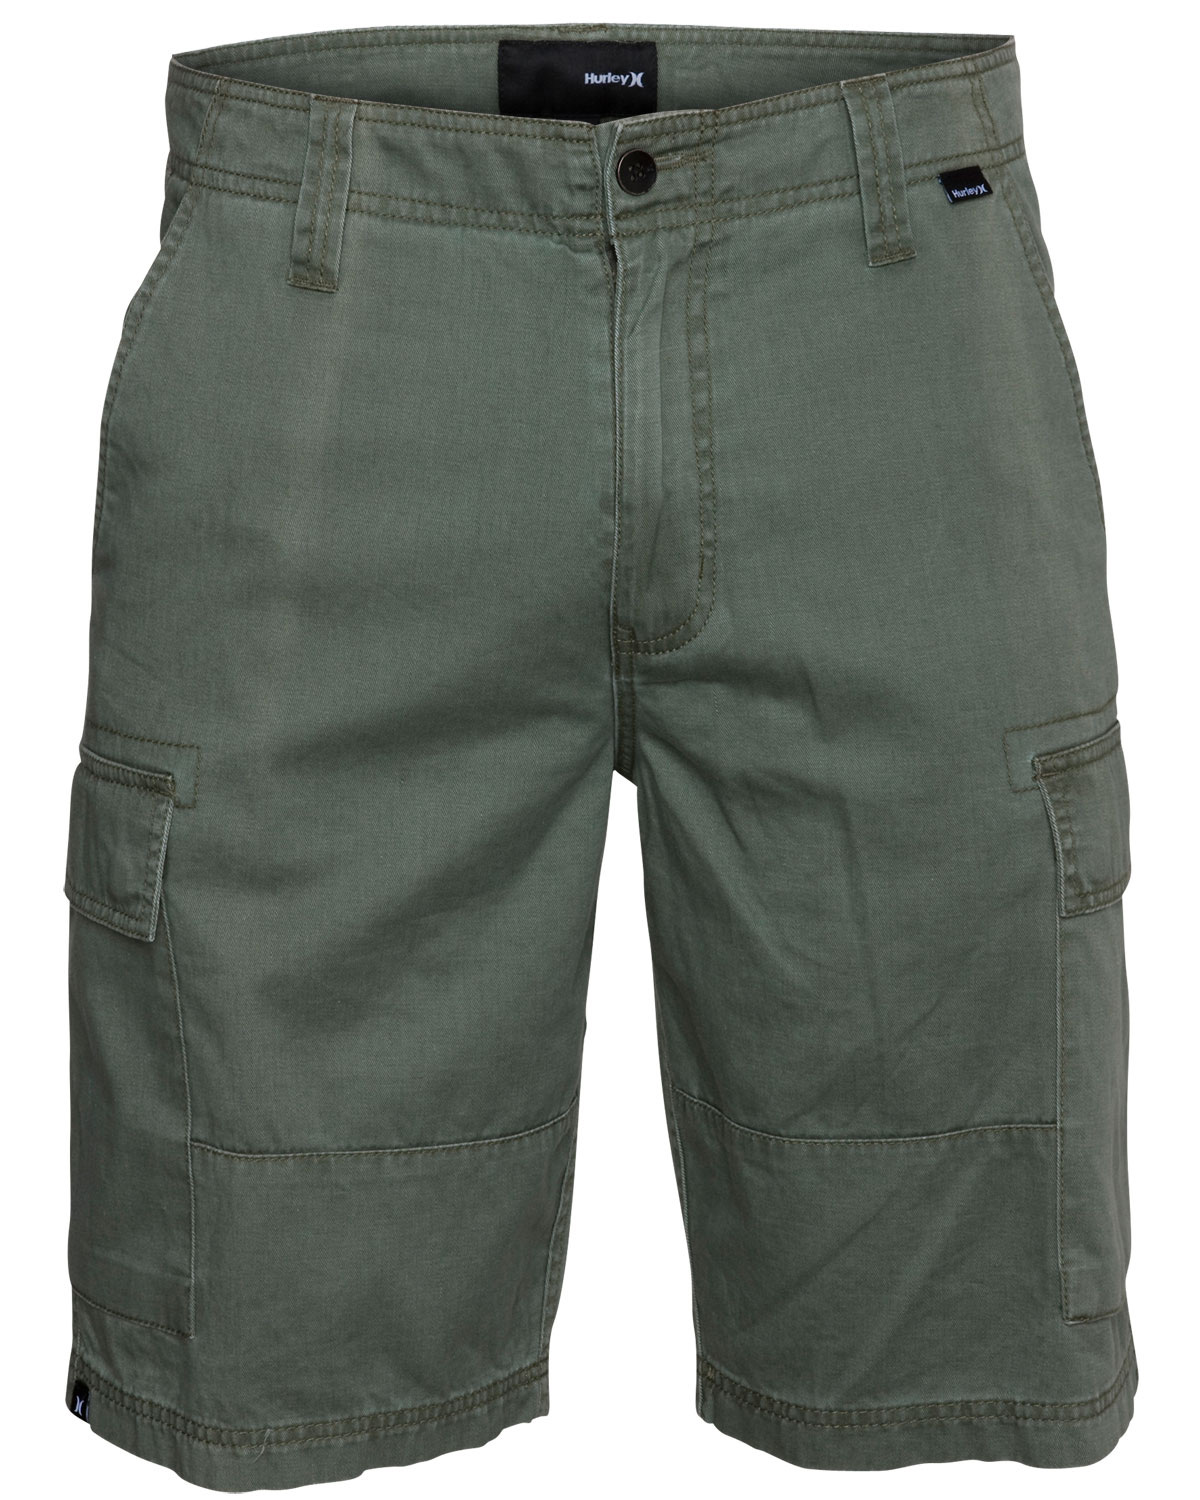 Surf Key Features of the Hurley Commander Shorts: Cargo Fit 100% Cotton Cargo pockets with hidden snaps, military details, woven label, high density screen print and self applique branding at waistband. - $31.95